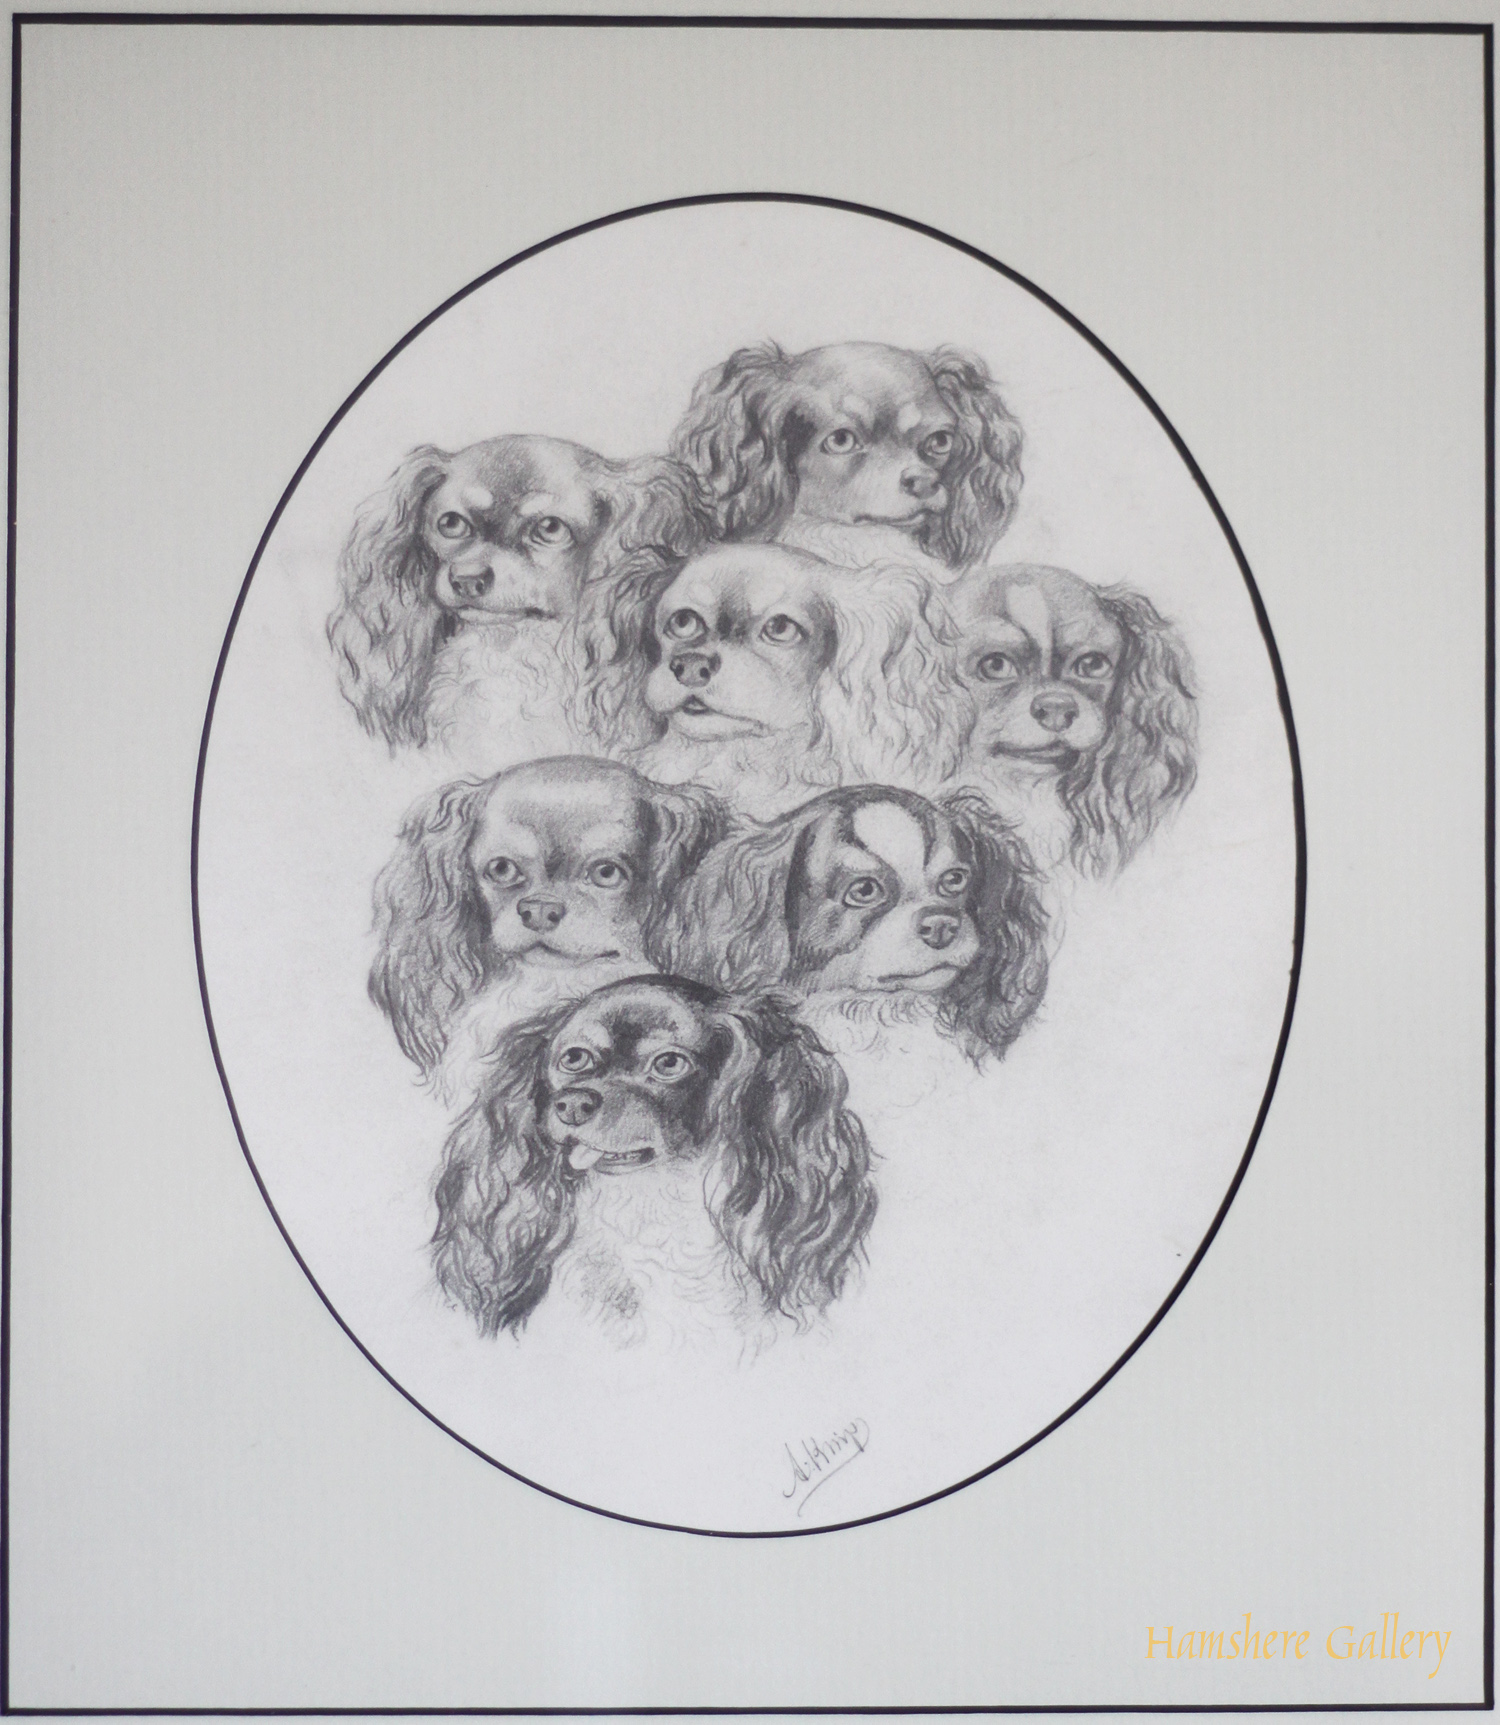 Click for larger image: A graphite drawing of seven King Charles Cavalier Spaniels by August Knip  - A graphite drawing of seven King Charles Cavalier Spaniels by August Knip